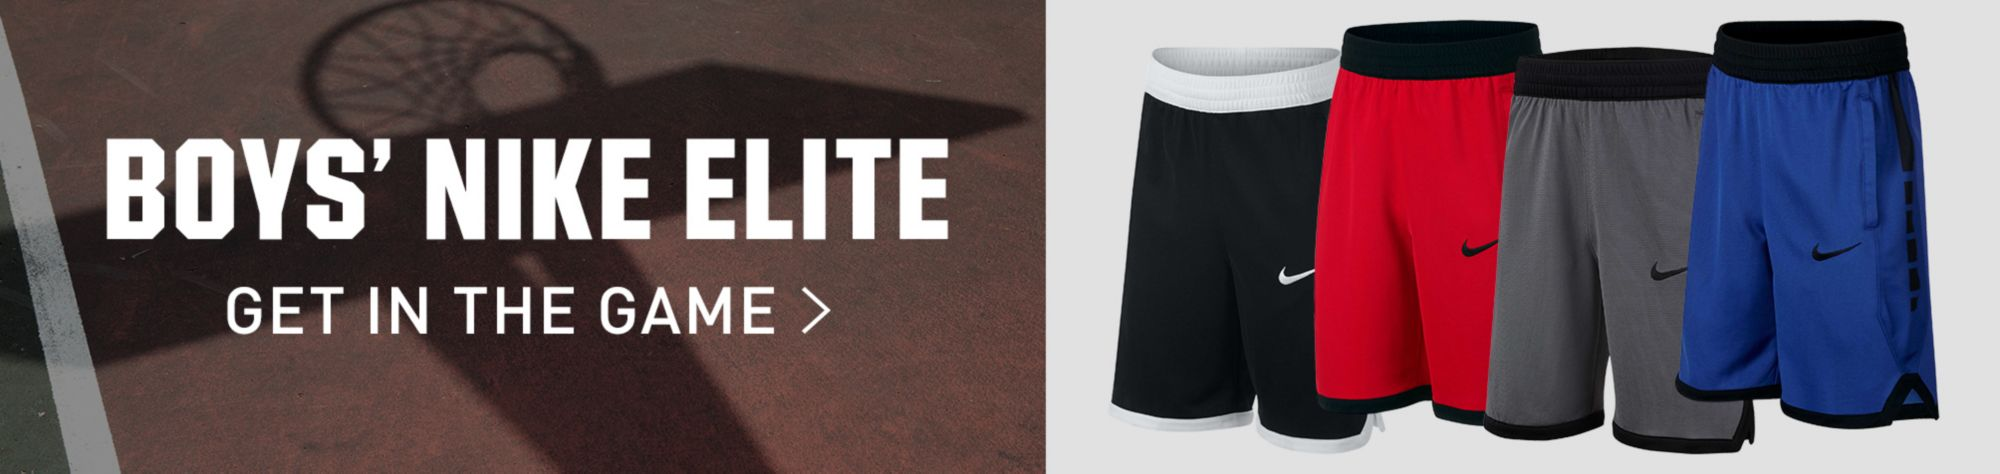 Boys' Nike Elite - Get In The Game